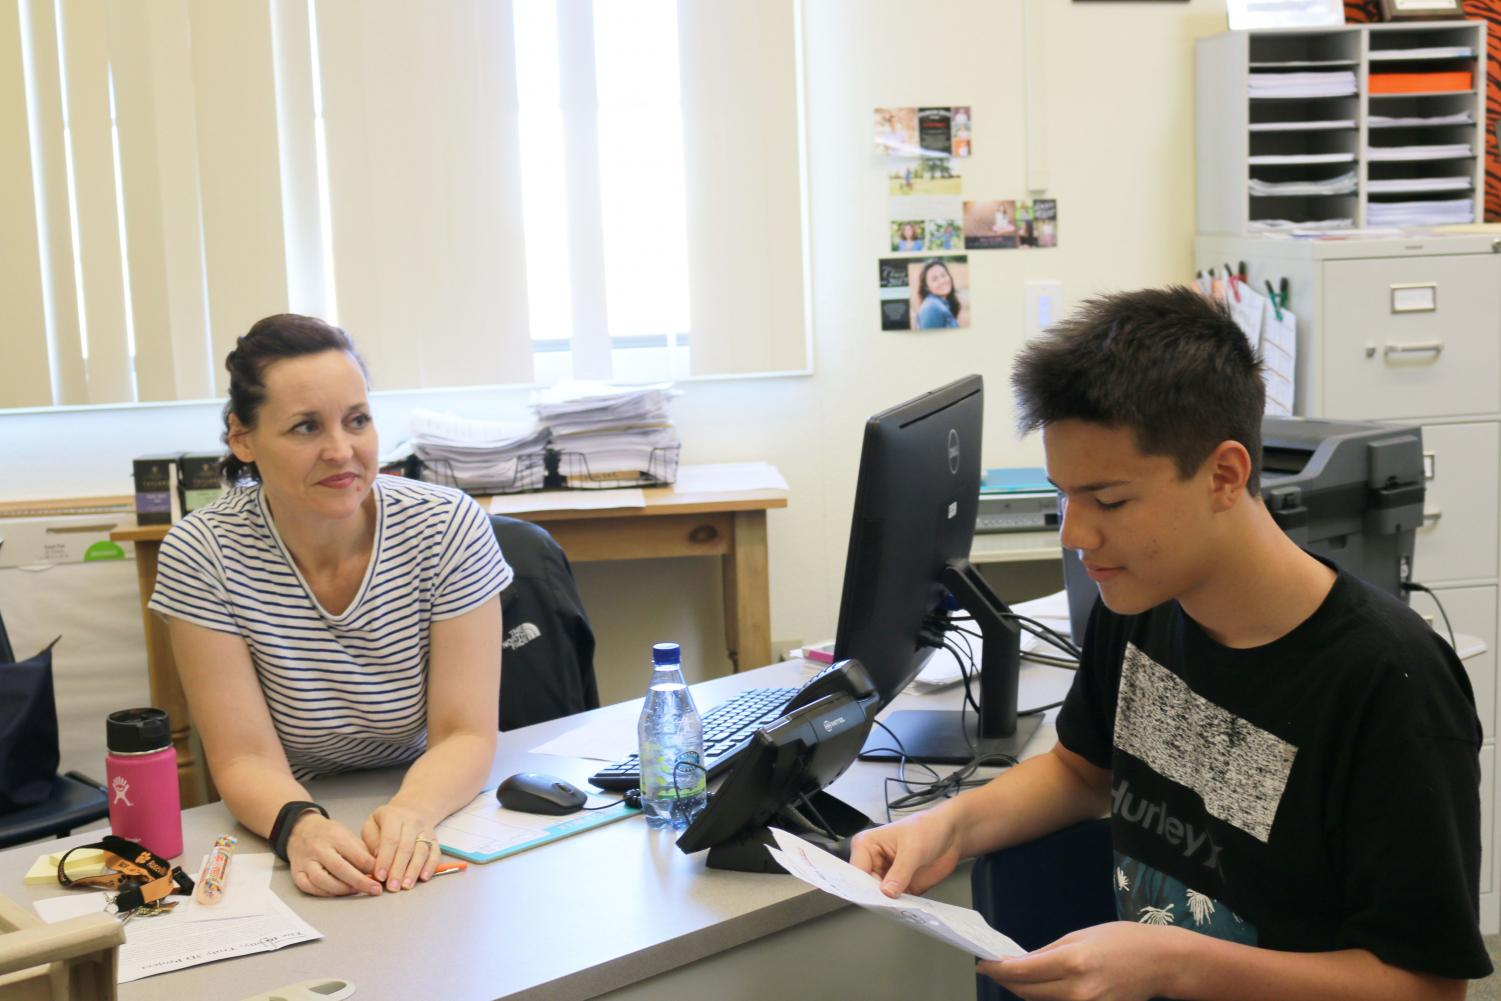 (NICOLE KHUDYAKOV EYE OF THE TIGER)  Josh Briscoe frequents French teacher Amy Mowrer's classroom, where he recieves advice on his conversational skills and analysis of the stories he writes in French.